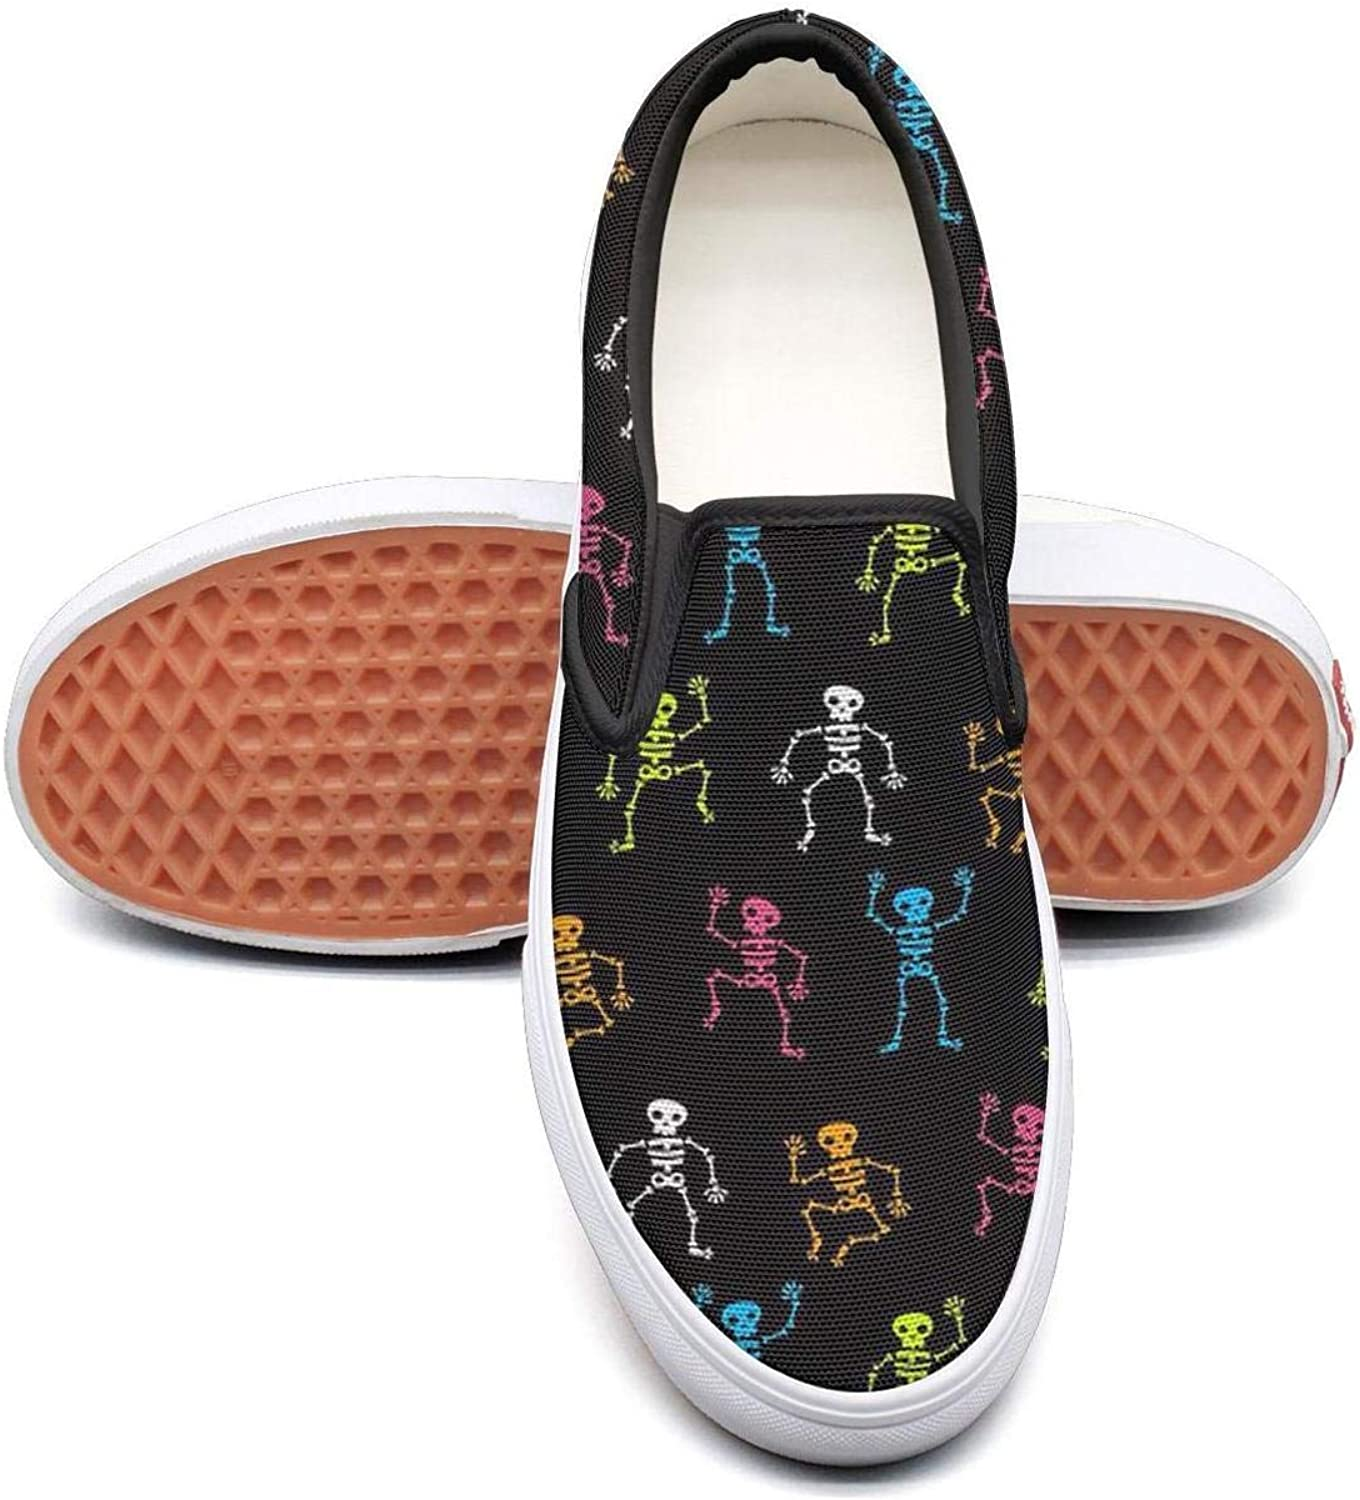 colors Dancing Skull Skeleton Slip On Canvas Upper Loafers Canvas shoes for Women Comfortable